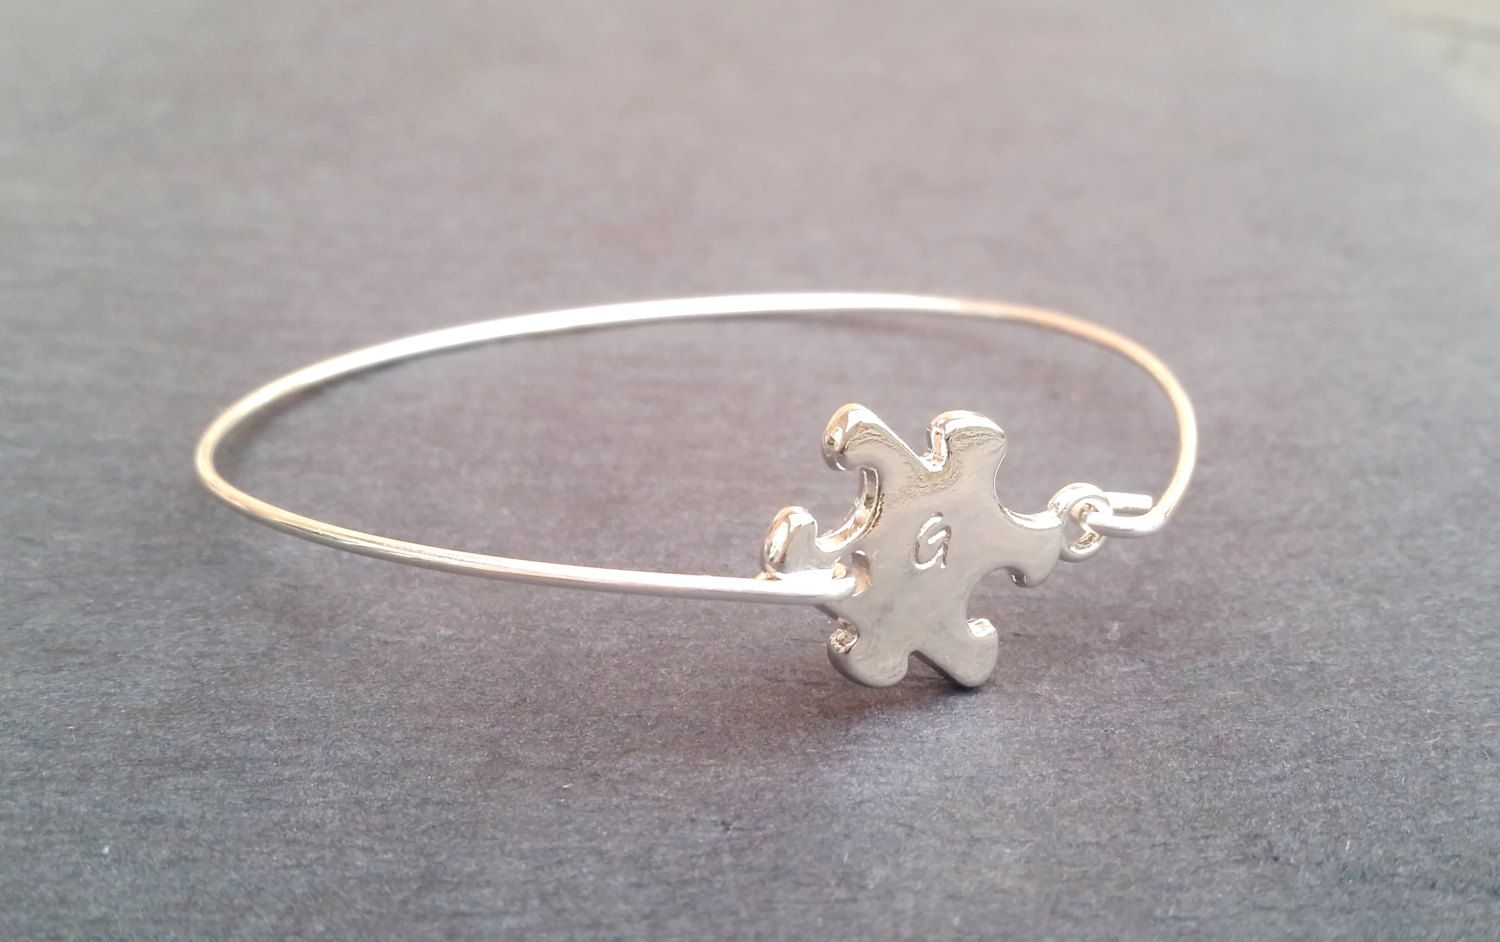 Quartz Bangle Jigsaw